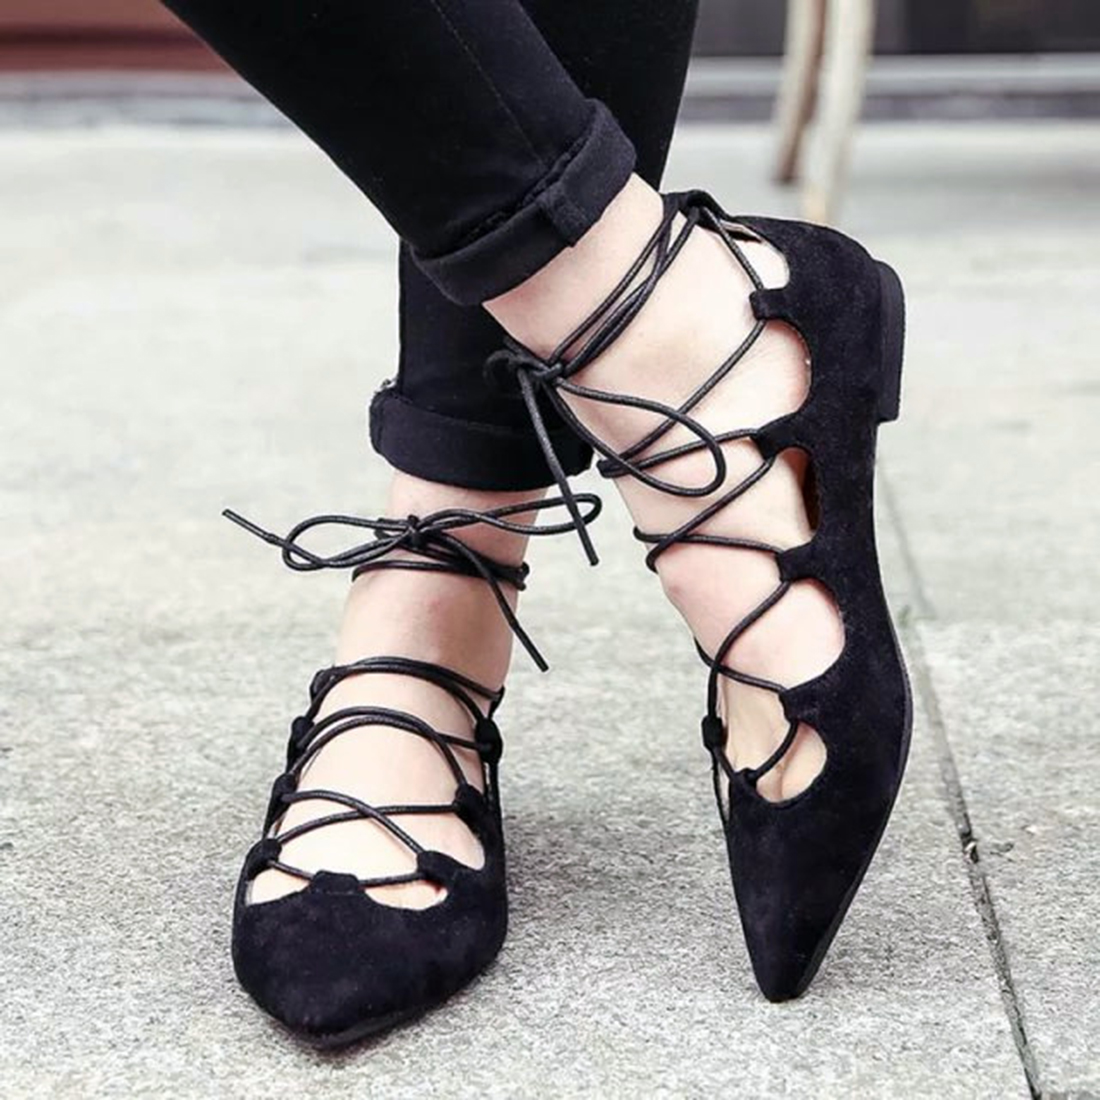 NEW Fashion Woman Flats spring summer Women Shoes top quality strappy women sandals suede Pointed Toe Gladiator Ballet Pumps plue size 34 49 spring summer high quality flats women shoes patent leather girls pointed toe fashion casual shoes woman flats